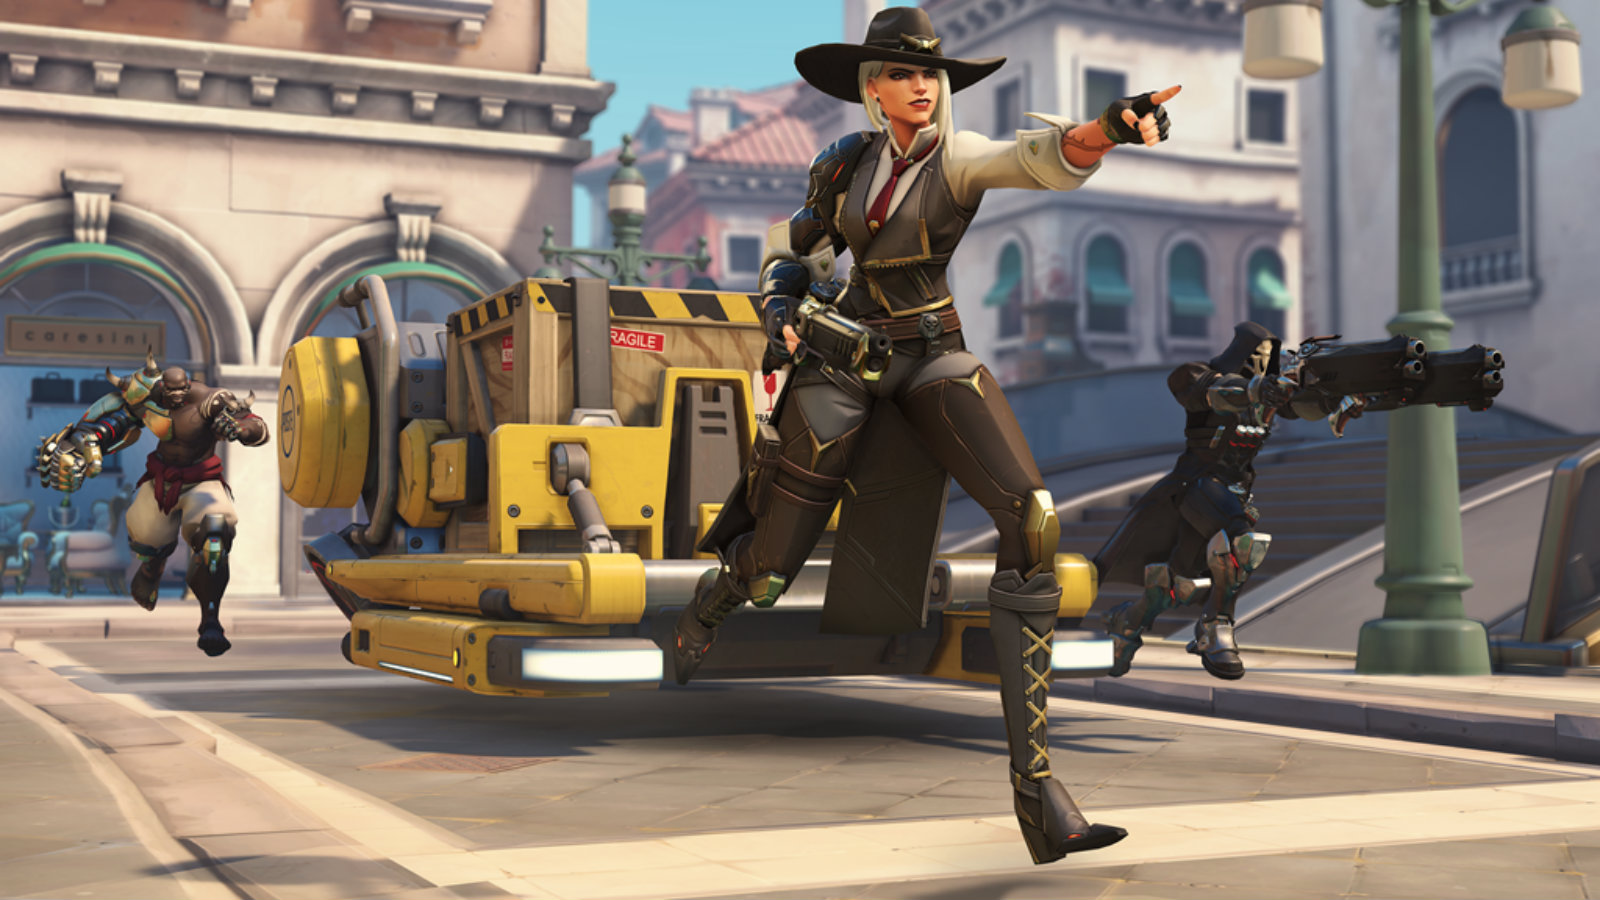 Ashe leads her team on Rialto